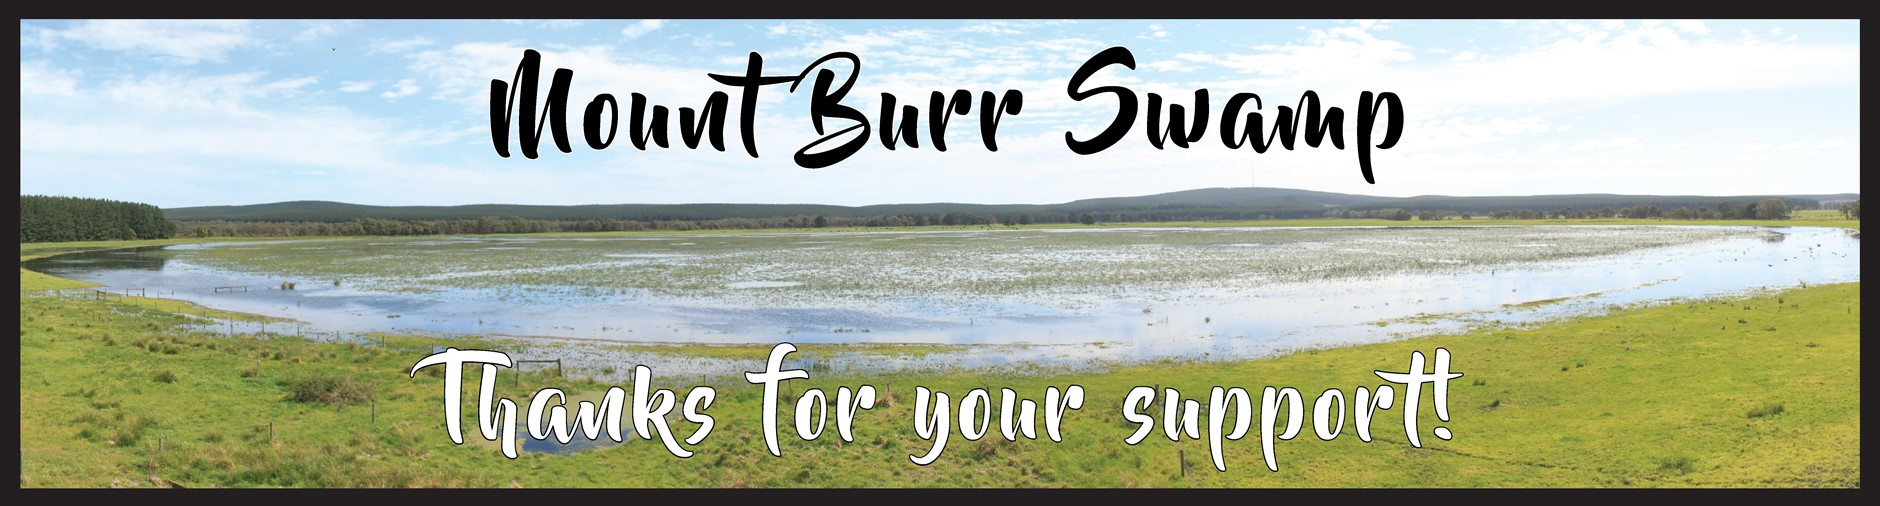 web-banner-mt-burr-swamp-thanks-for-support-lower-res